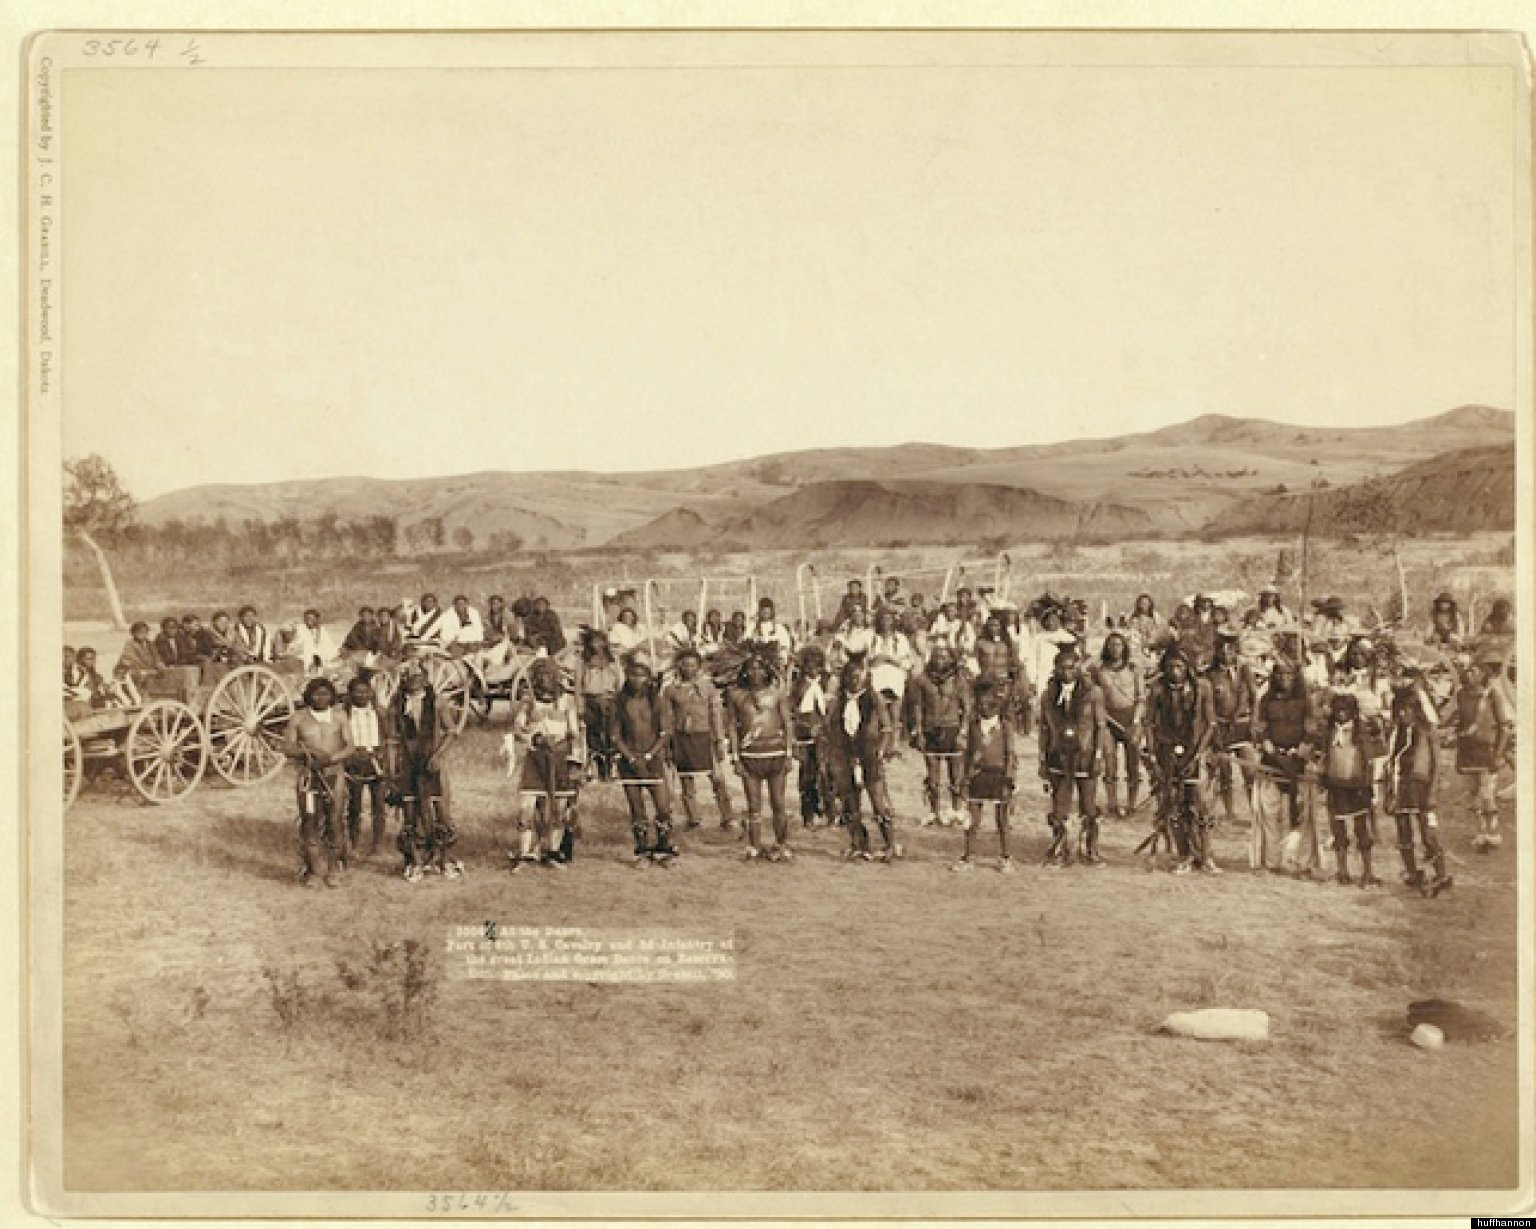 What happened at wounded knee?